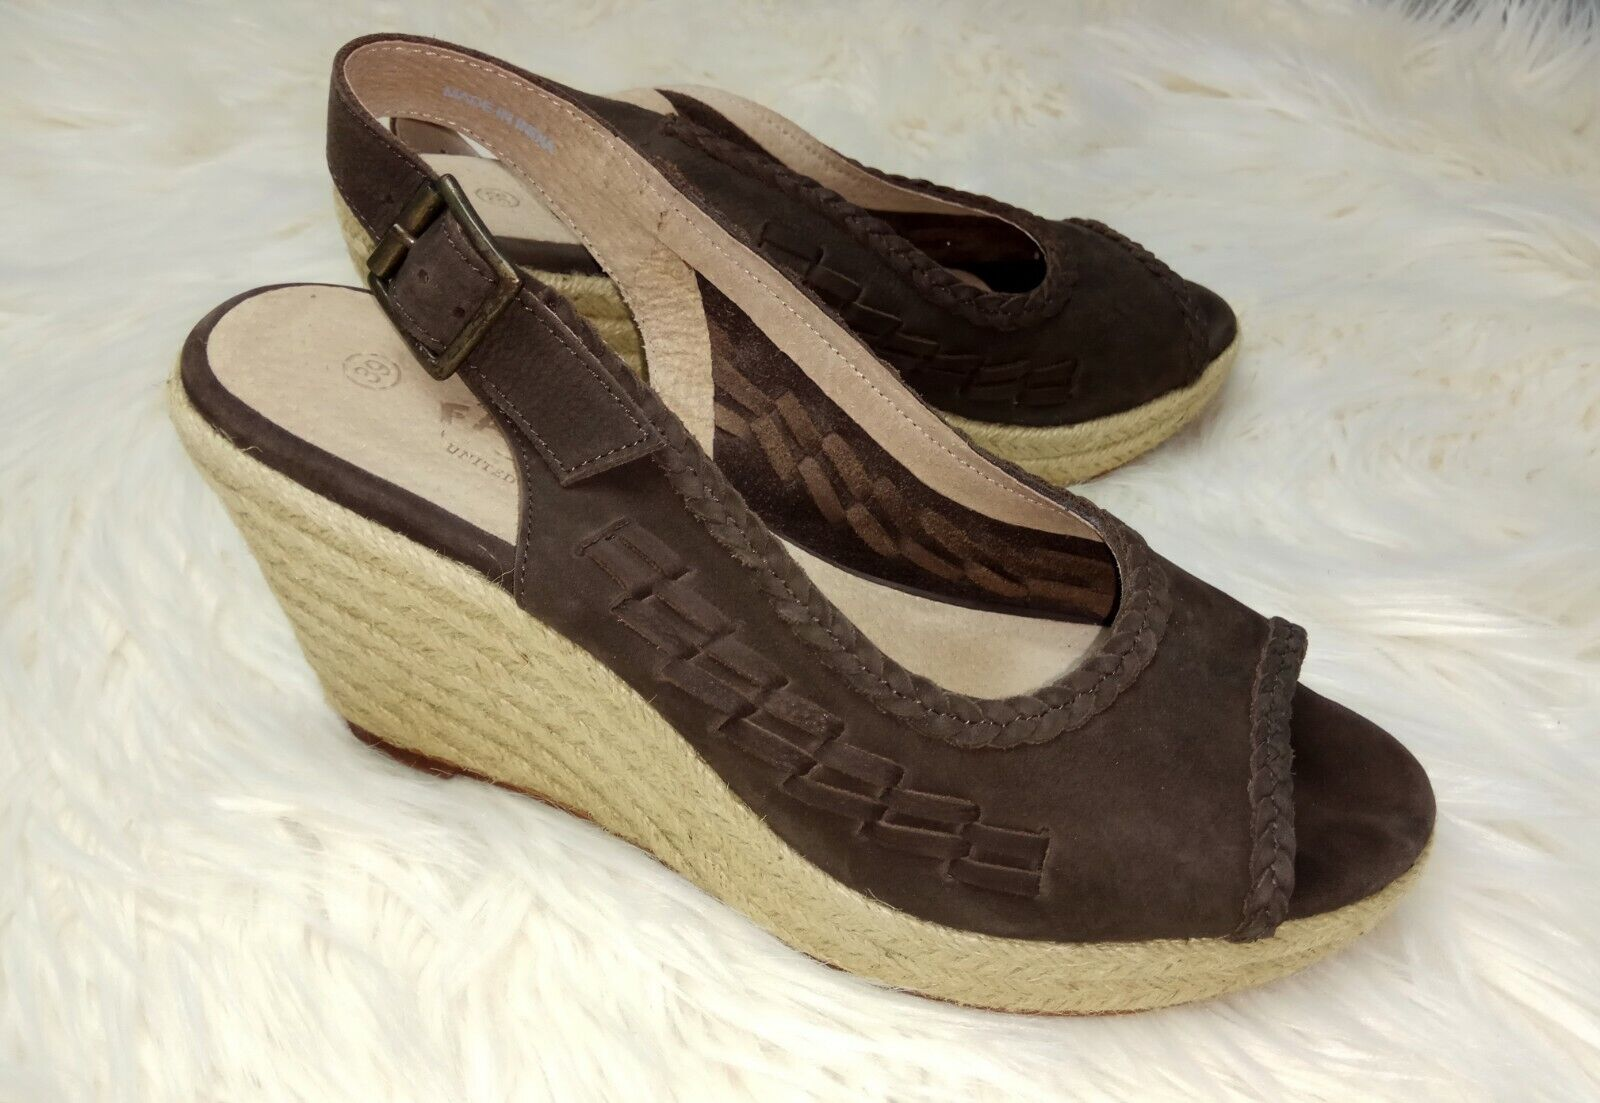 5d855b64470 Face ladies brown suede leather espadrille sling back wedge sandals ...